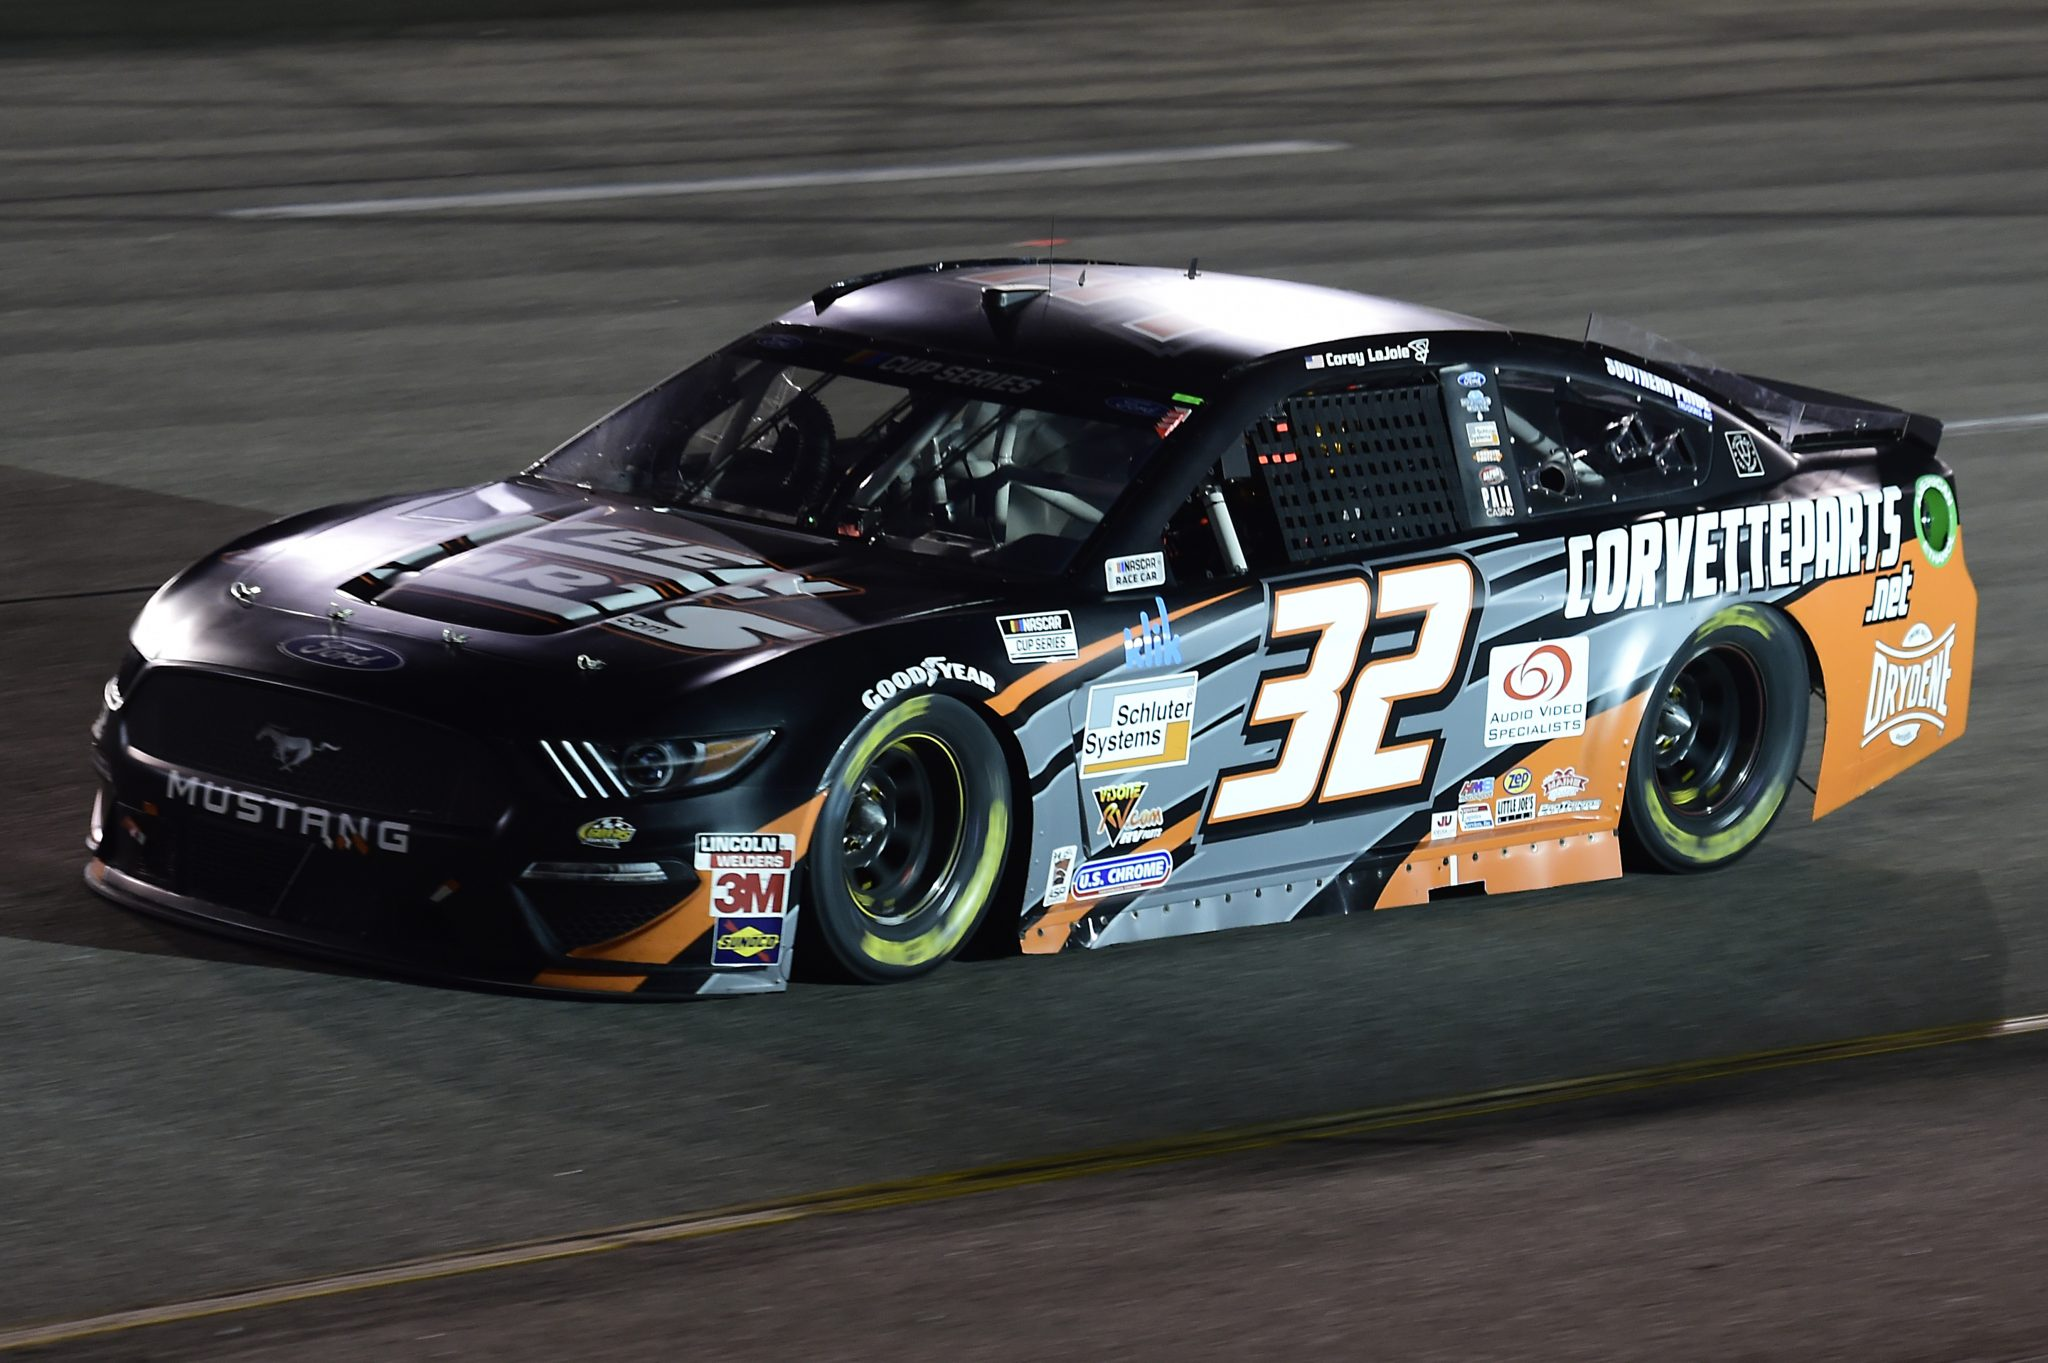 RICHMOND, VIRGINIA - SEPTEMBER 12: Corey LaJoie, driver of the #32 Keen Parts Ford, drives during the NASCAR Cup Series Federated Auto Parts 400 at Richmond Raceway on September 12, 2020 in Richmond, Virginia. (Photo by Jared C. Tilton/Getty Images) | Getty Images